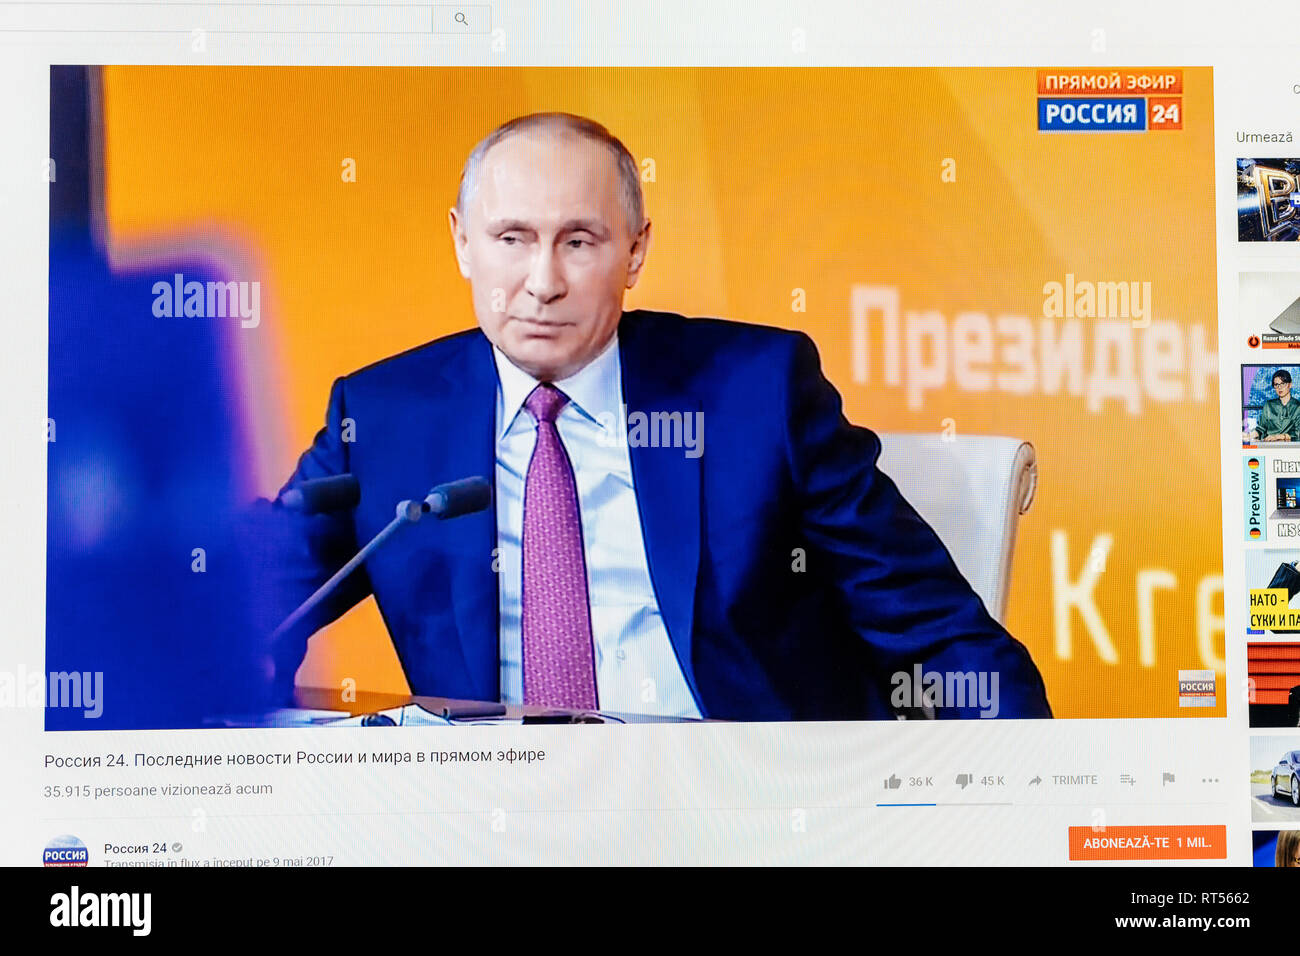 PARIS, FRANCE - DEC 14, 2017: Watching Youtube live channel of Rossiya RTR with relaxed pose of Russian President Vladimir Putin as he gives give final media Q&A before March election - Stock Image